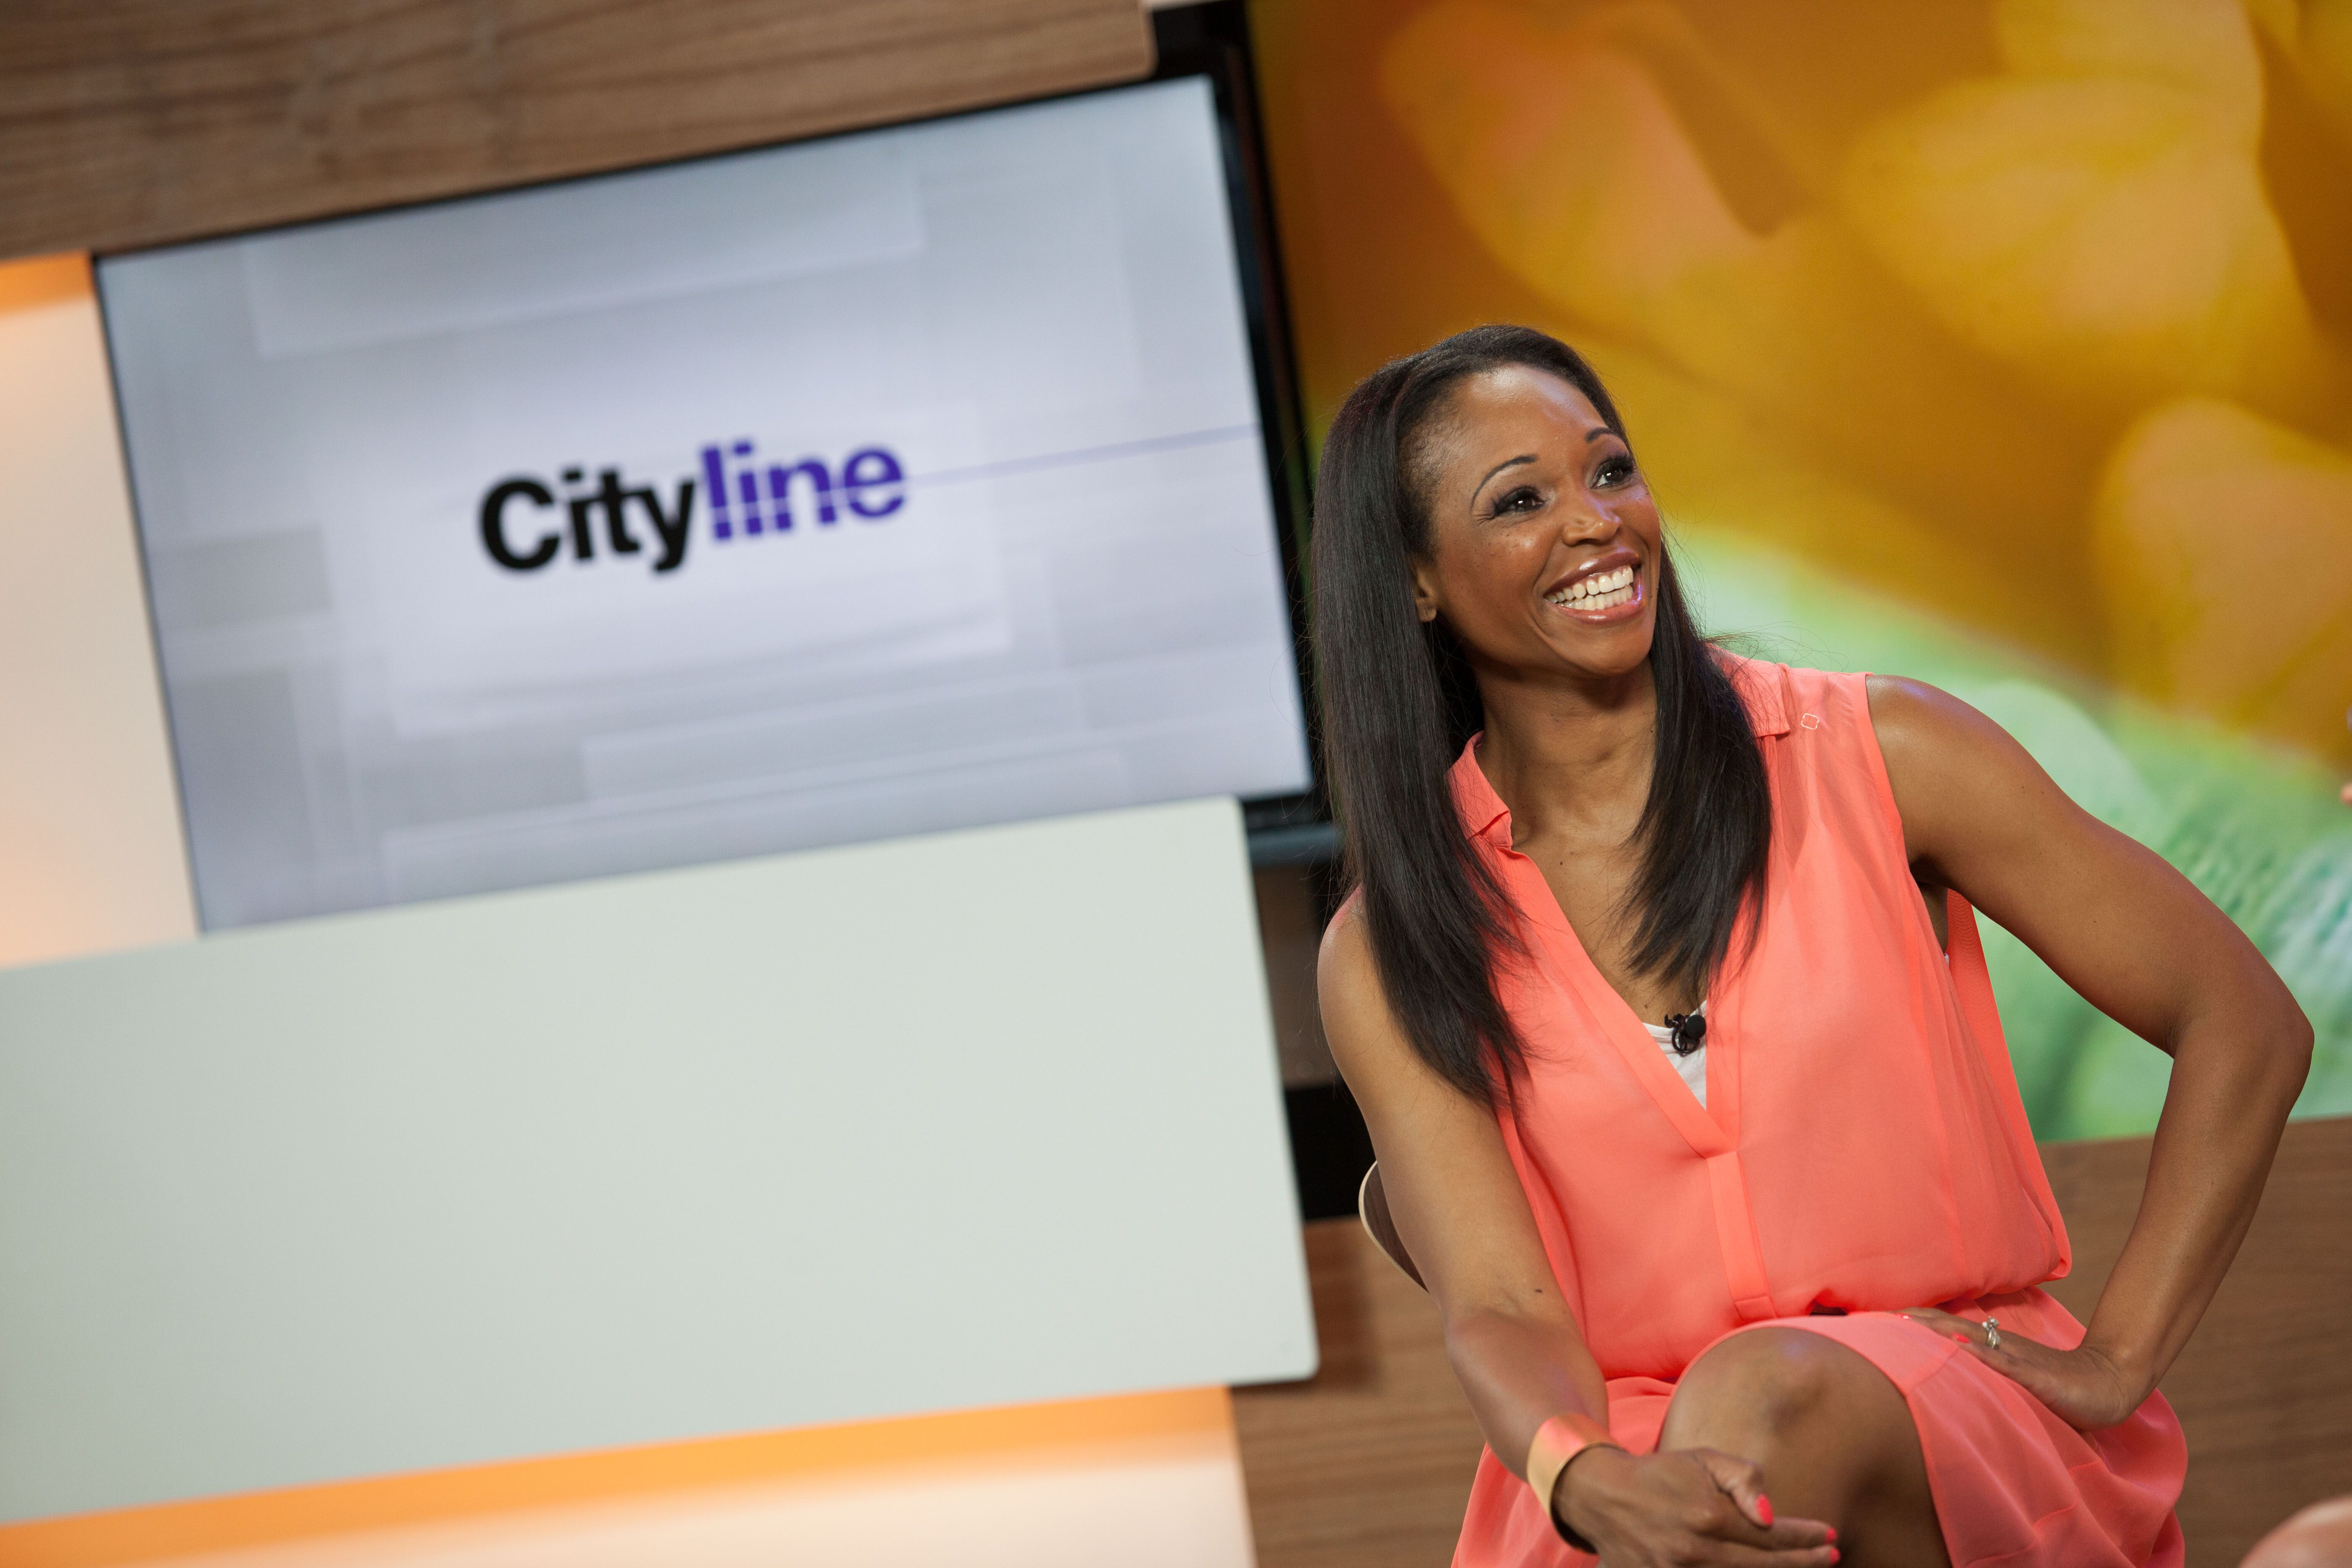 Tracy Moore Cityline-at work